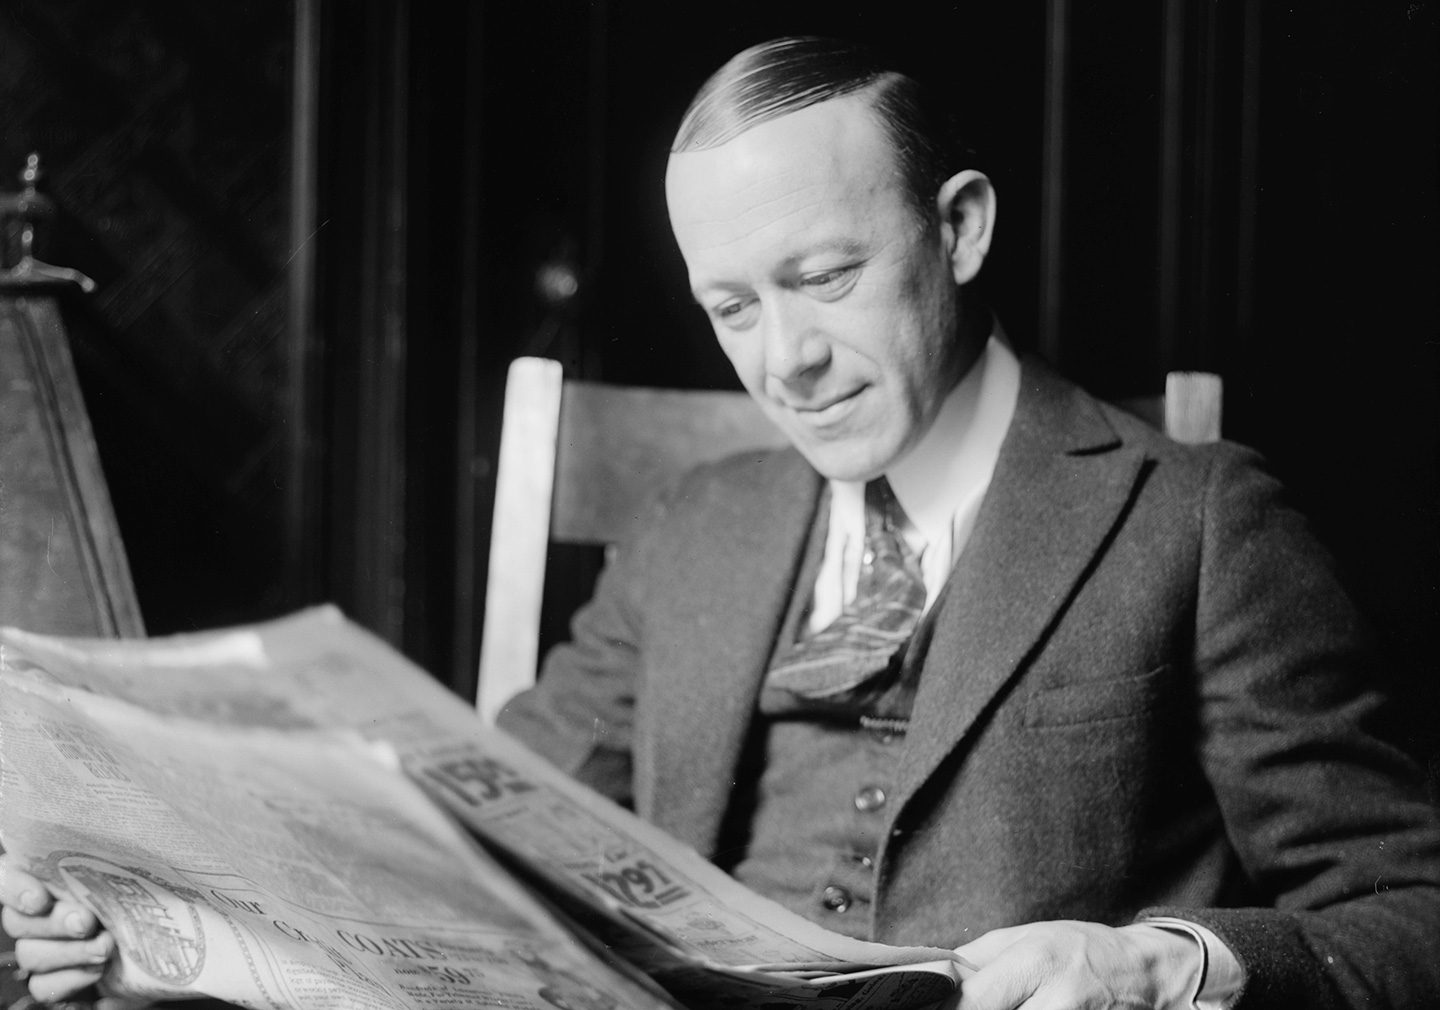 Ernest Hare Reading a Newspaper